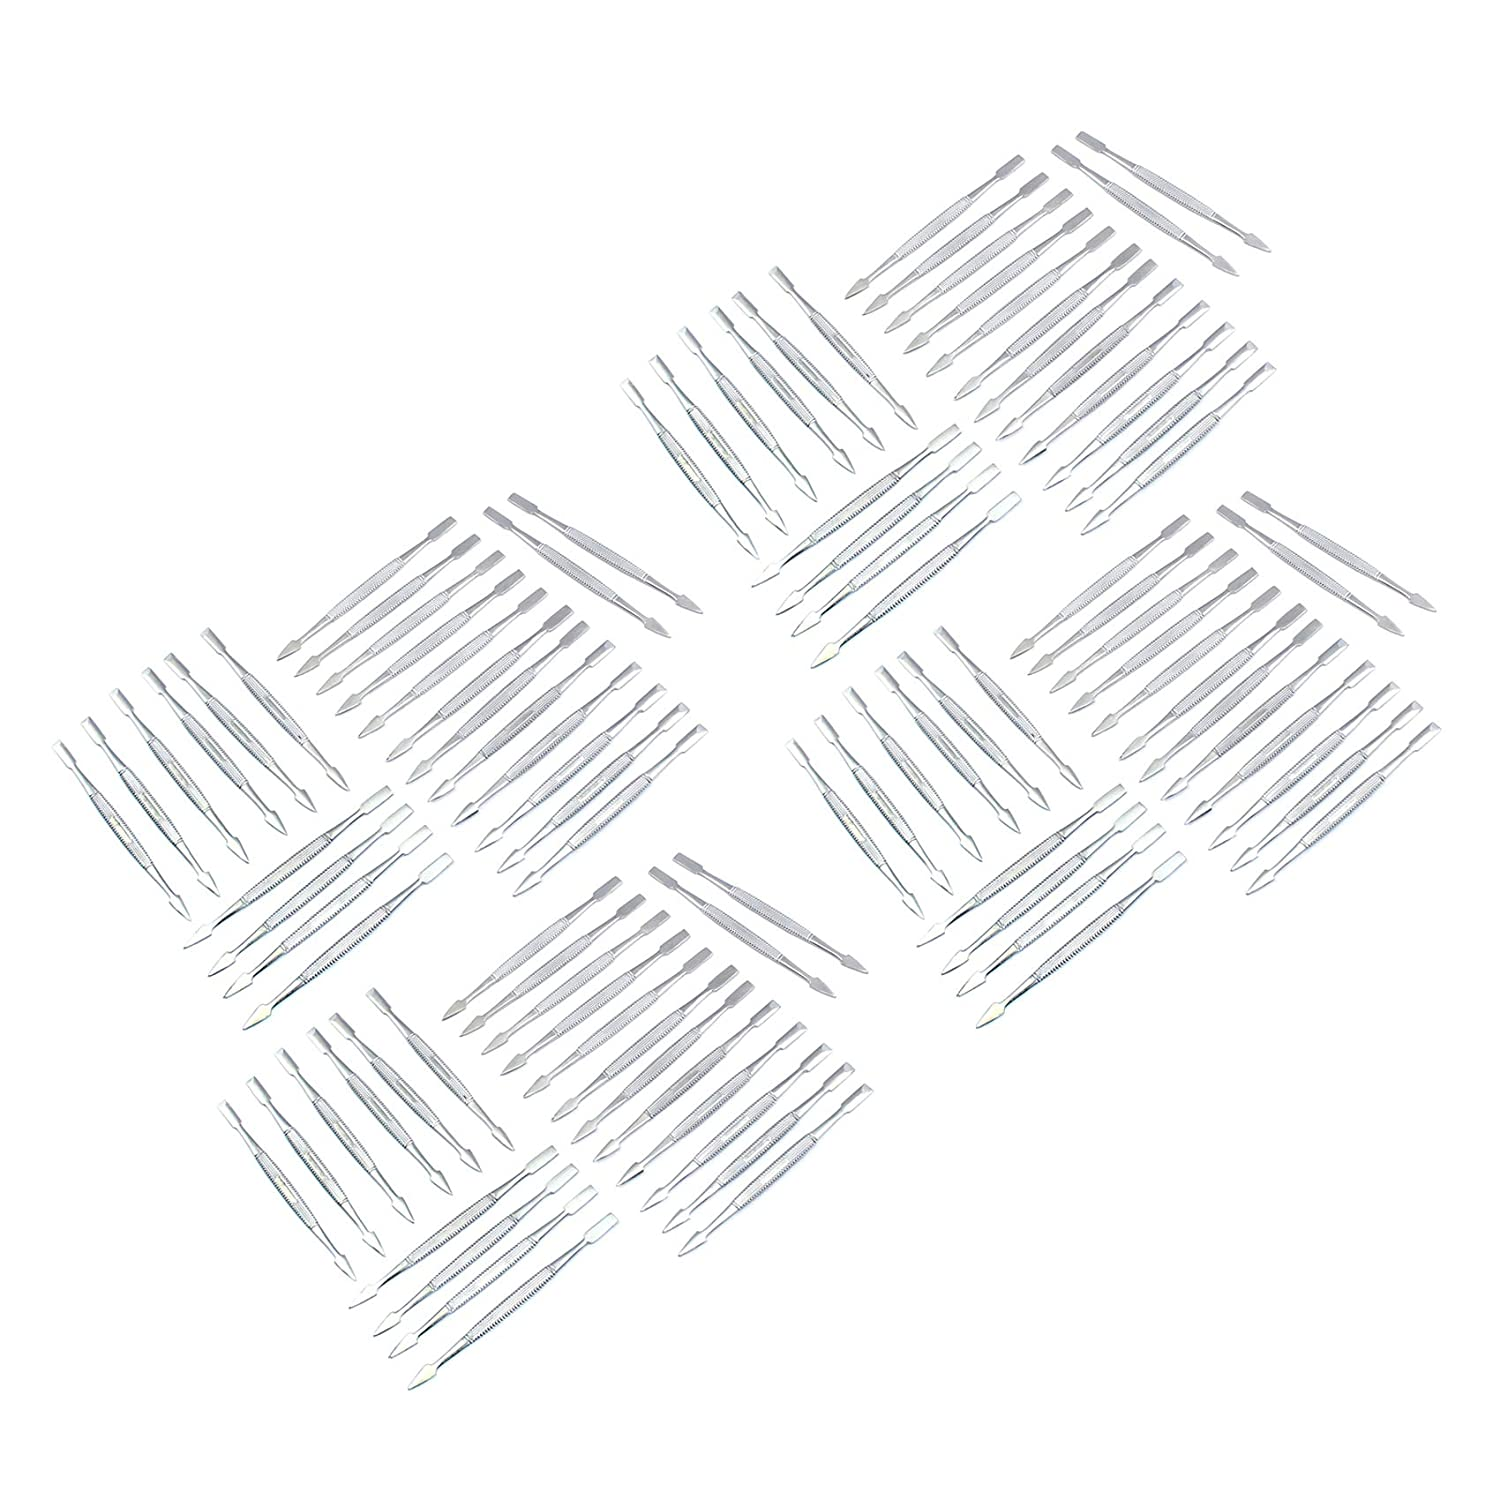 OdontoMed2011 Lot Of 100 Professional Award Nail Chrome Baltimore Mall Cuticle Pusher